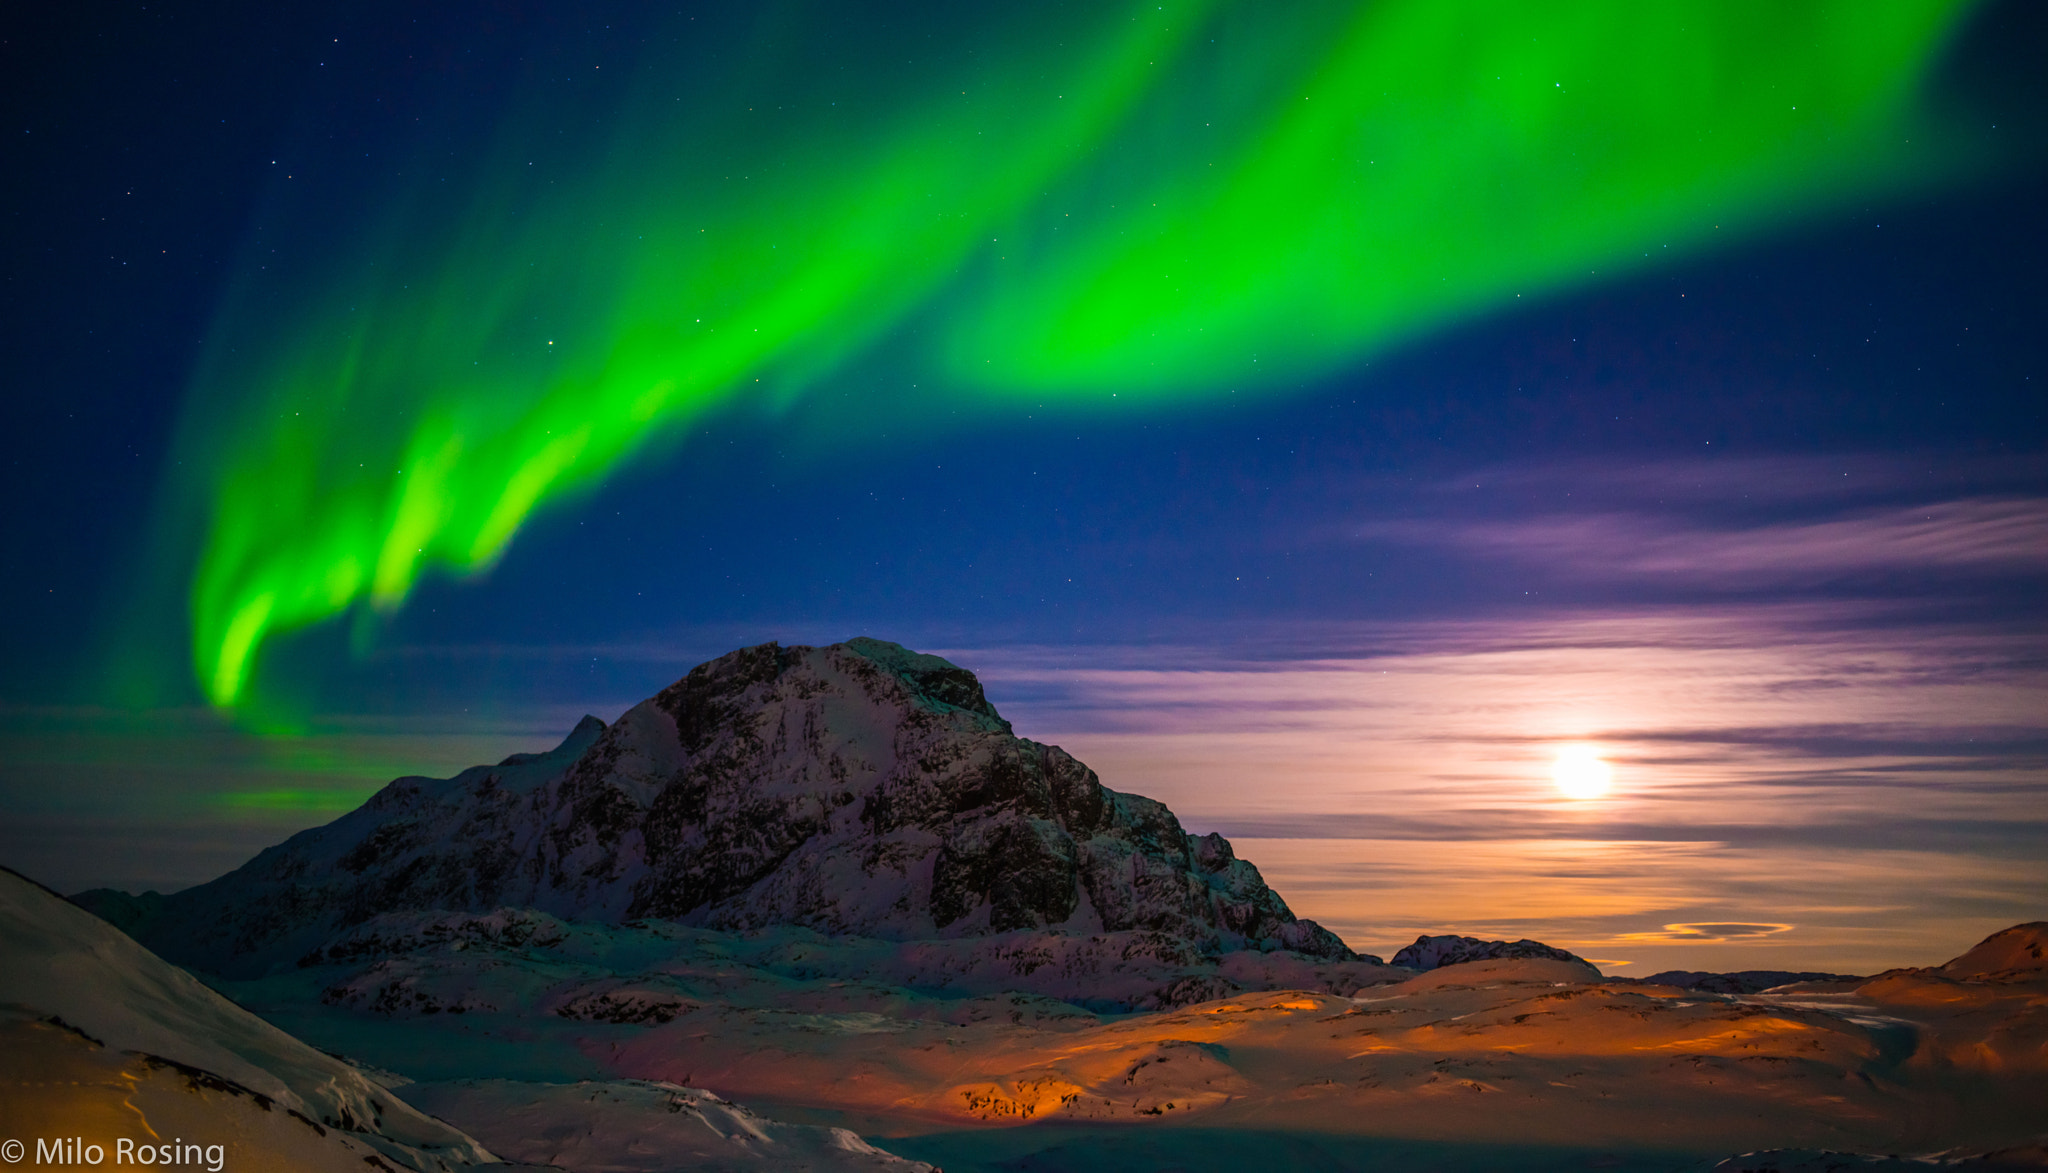 Photograph The Arctic Light Show by Milo Rosing on 500px